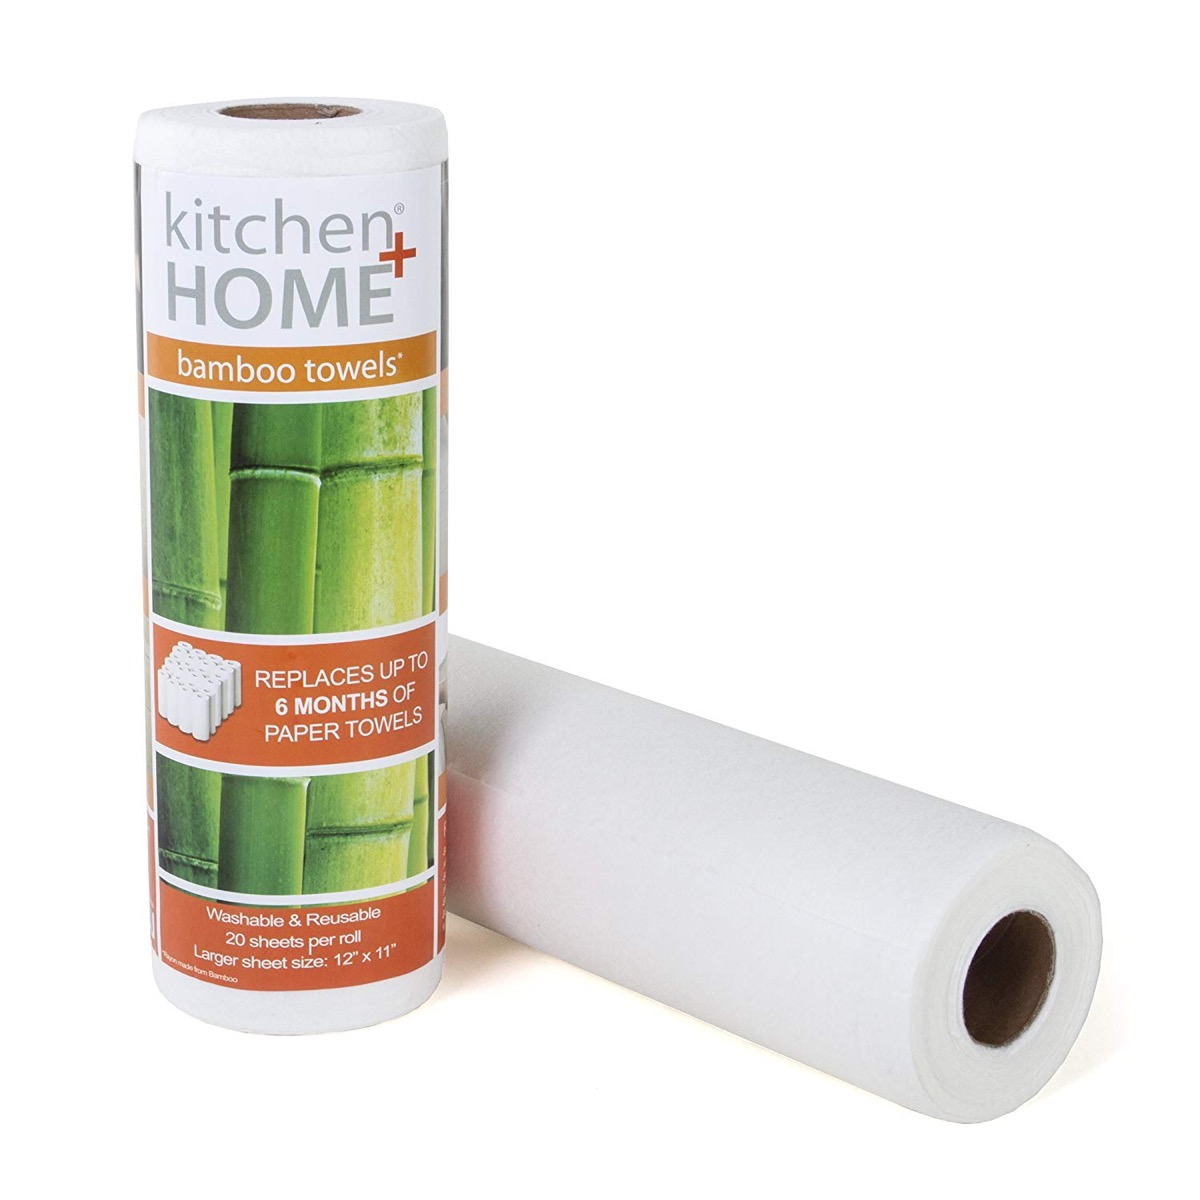 reusable paper towel roll, earth friendly cleaning products